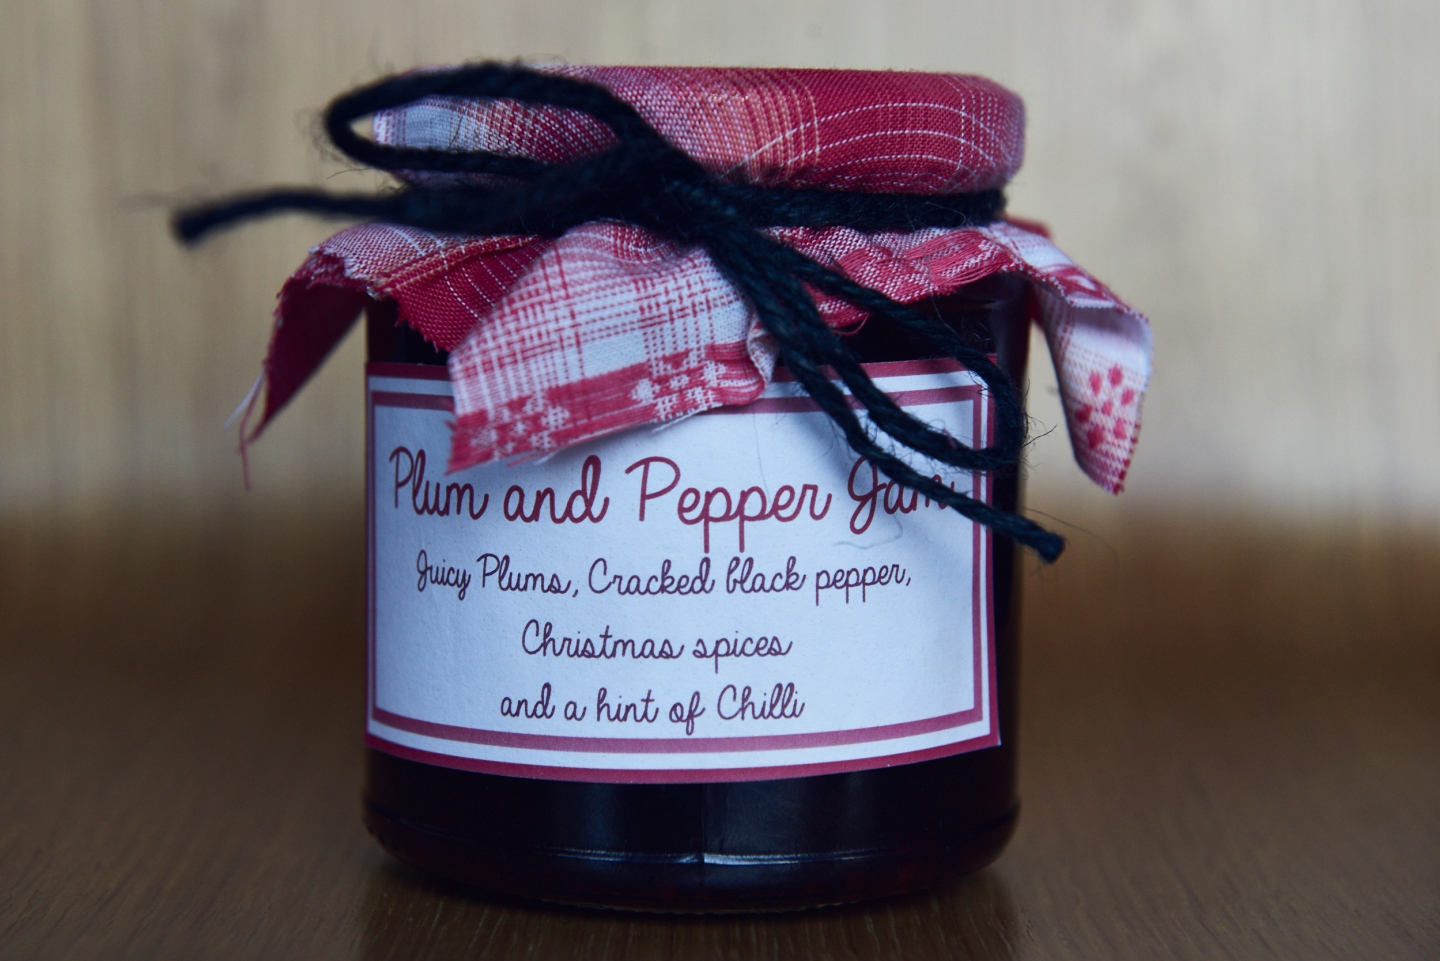 Plum and Pepper Jam Time